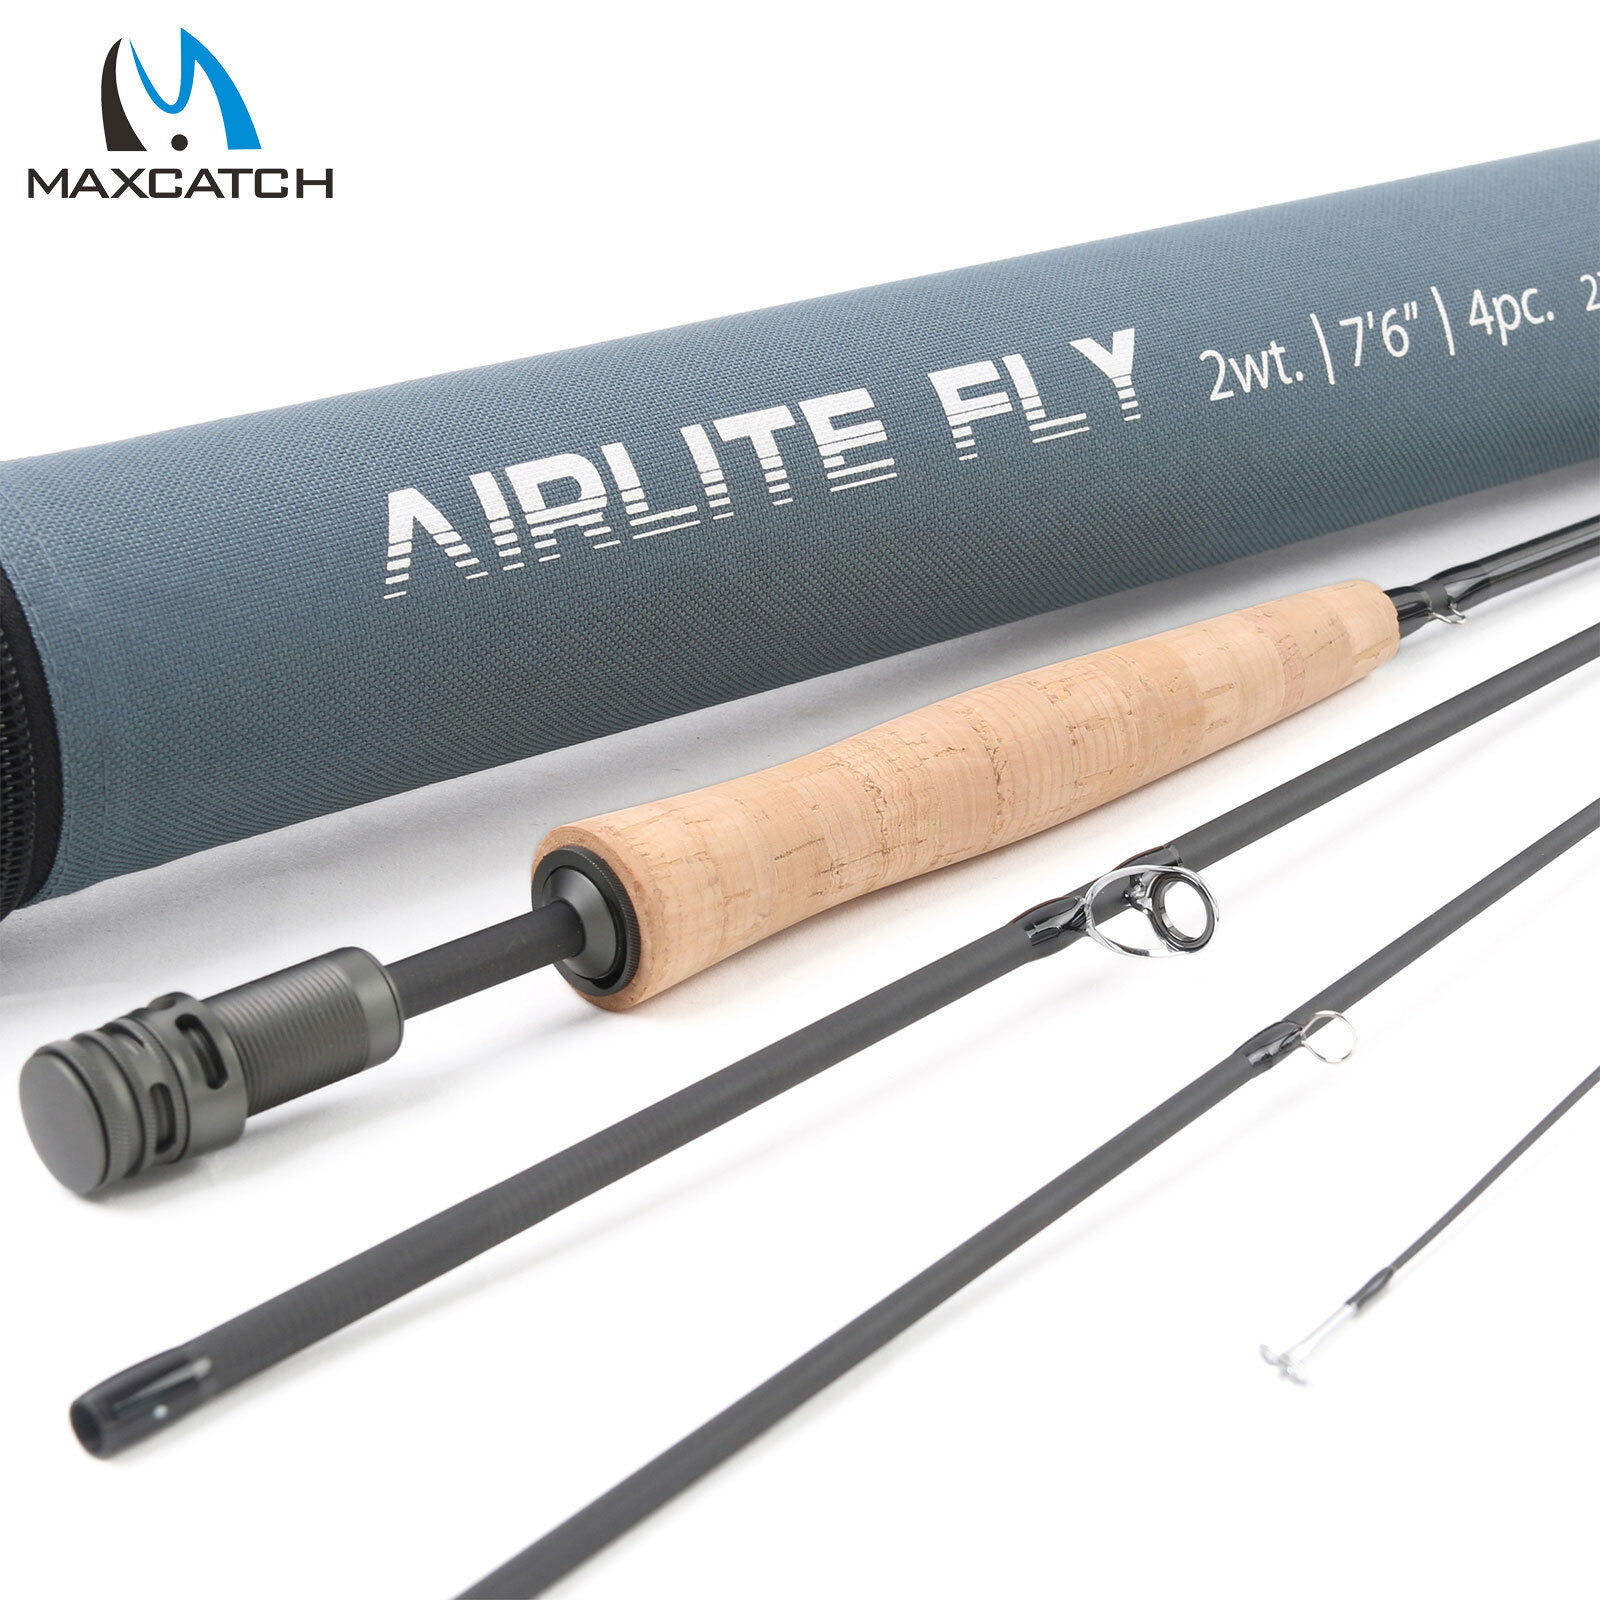 Maxcatch AIRLITE 2 3WT 7'6'' Lightweight Fly Fishing Rod IM10 Carbon Fiber